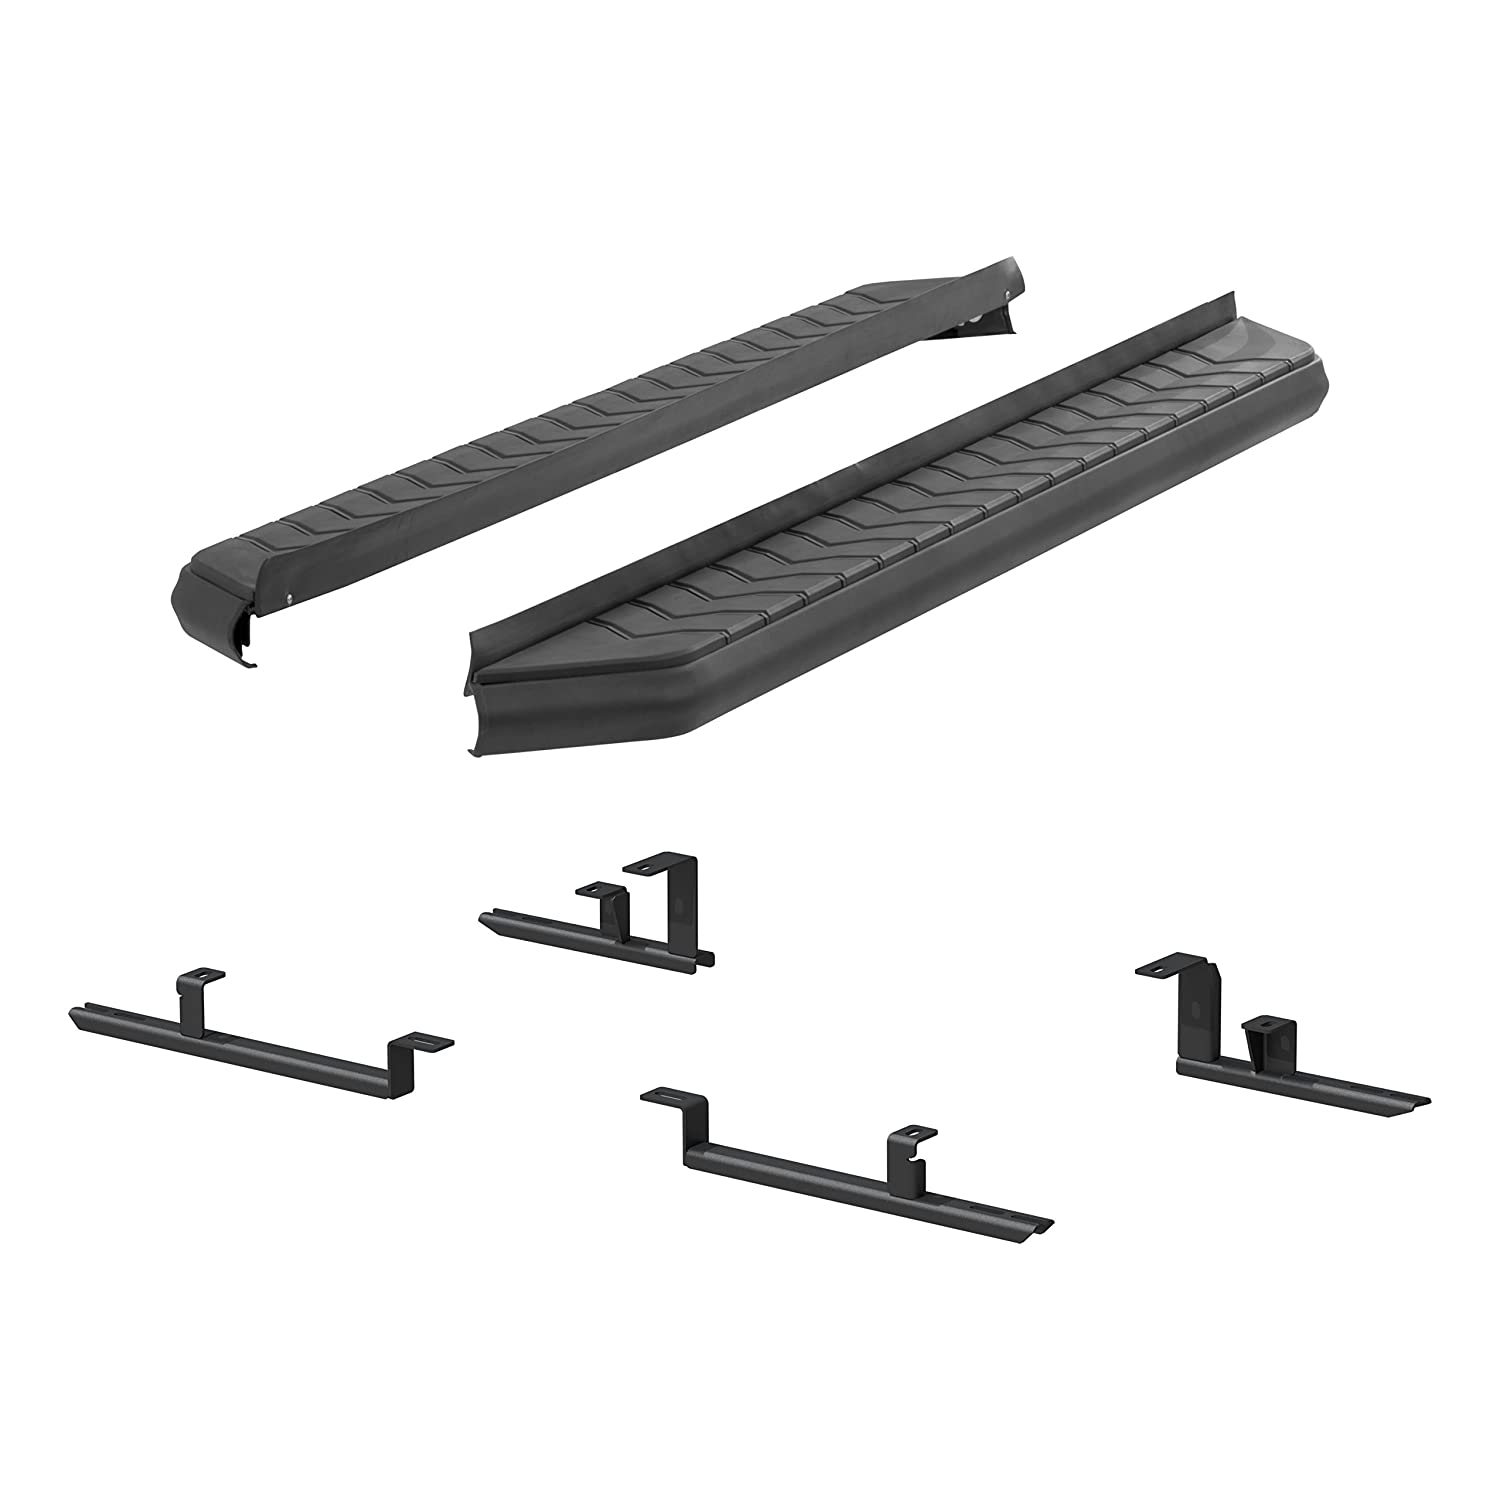 Aries 2061034 AeroTread Running Board 5 Black Powder Coated Stainless Steel Trim with Aluminum Base 2 Pack